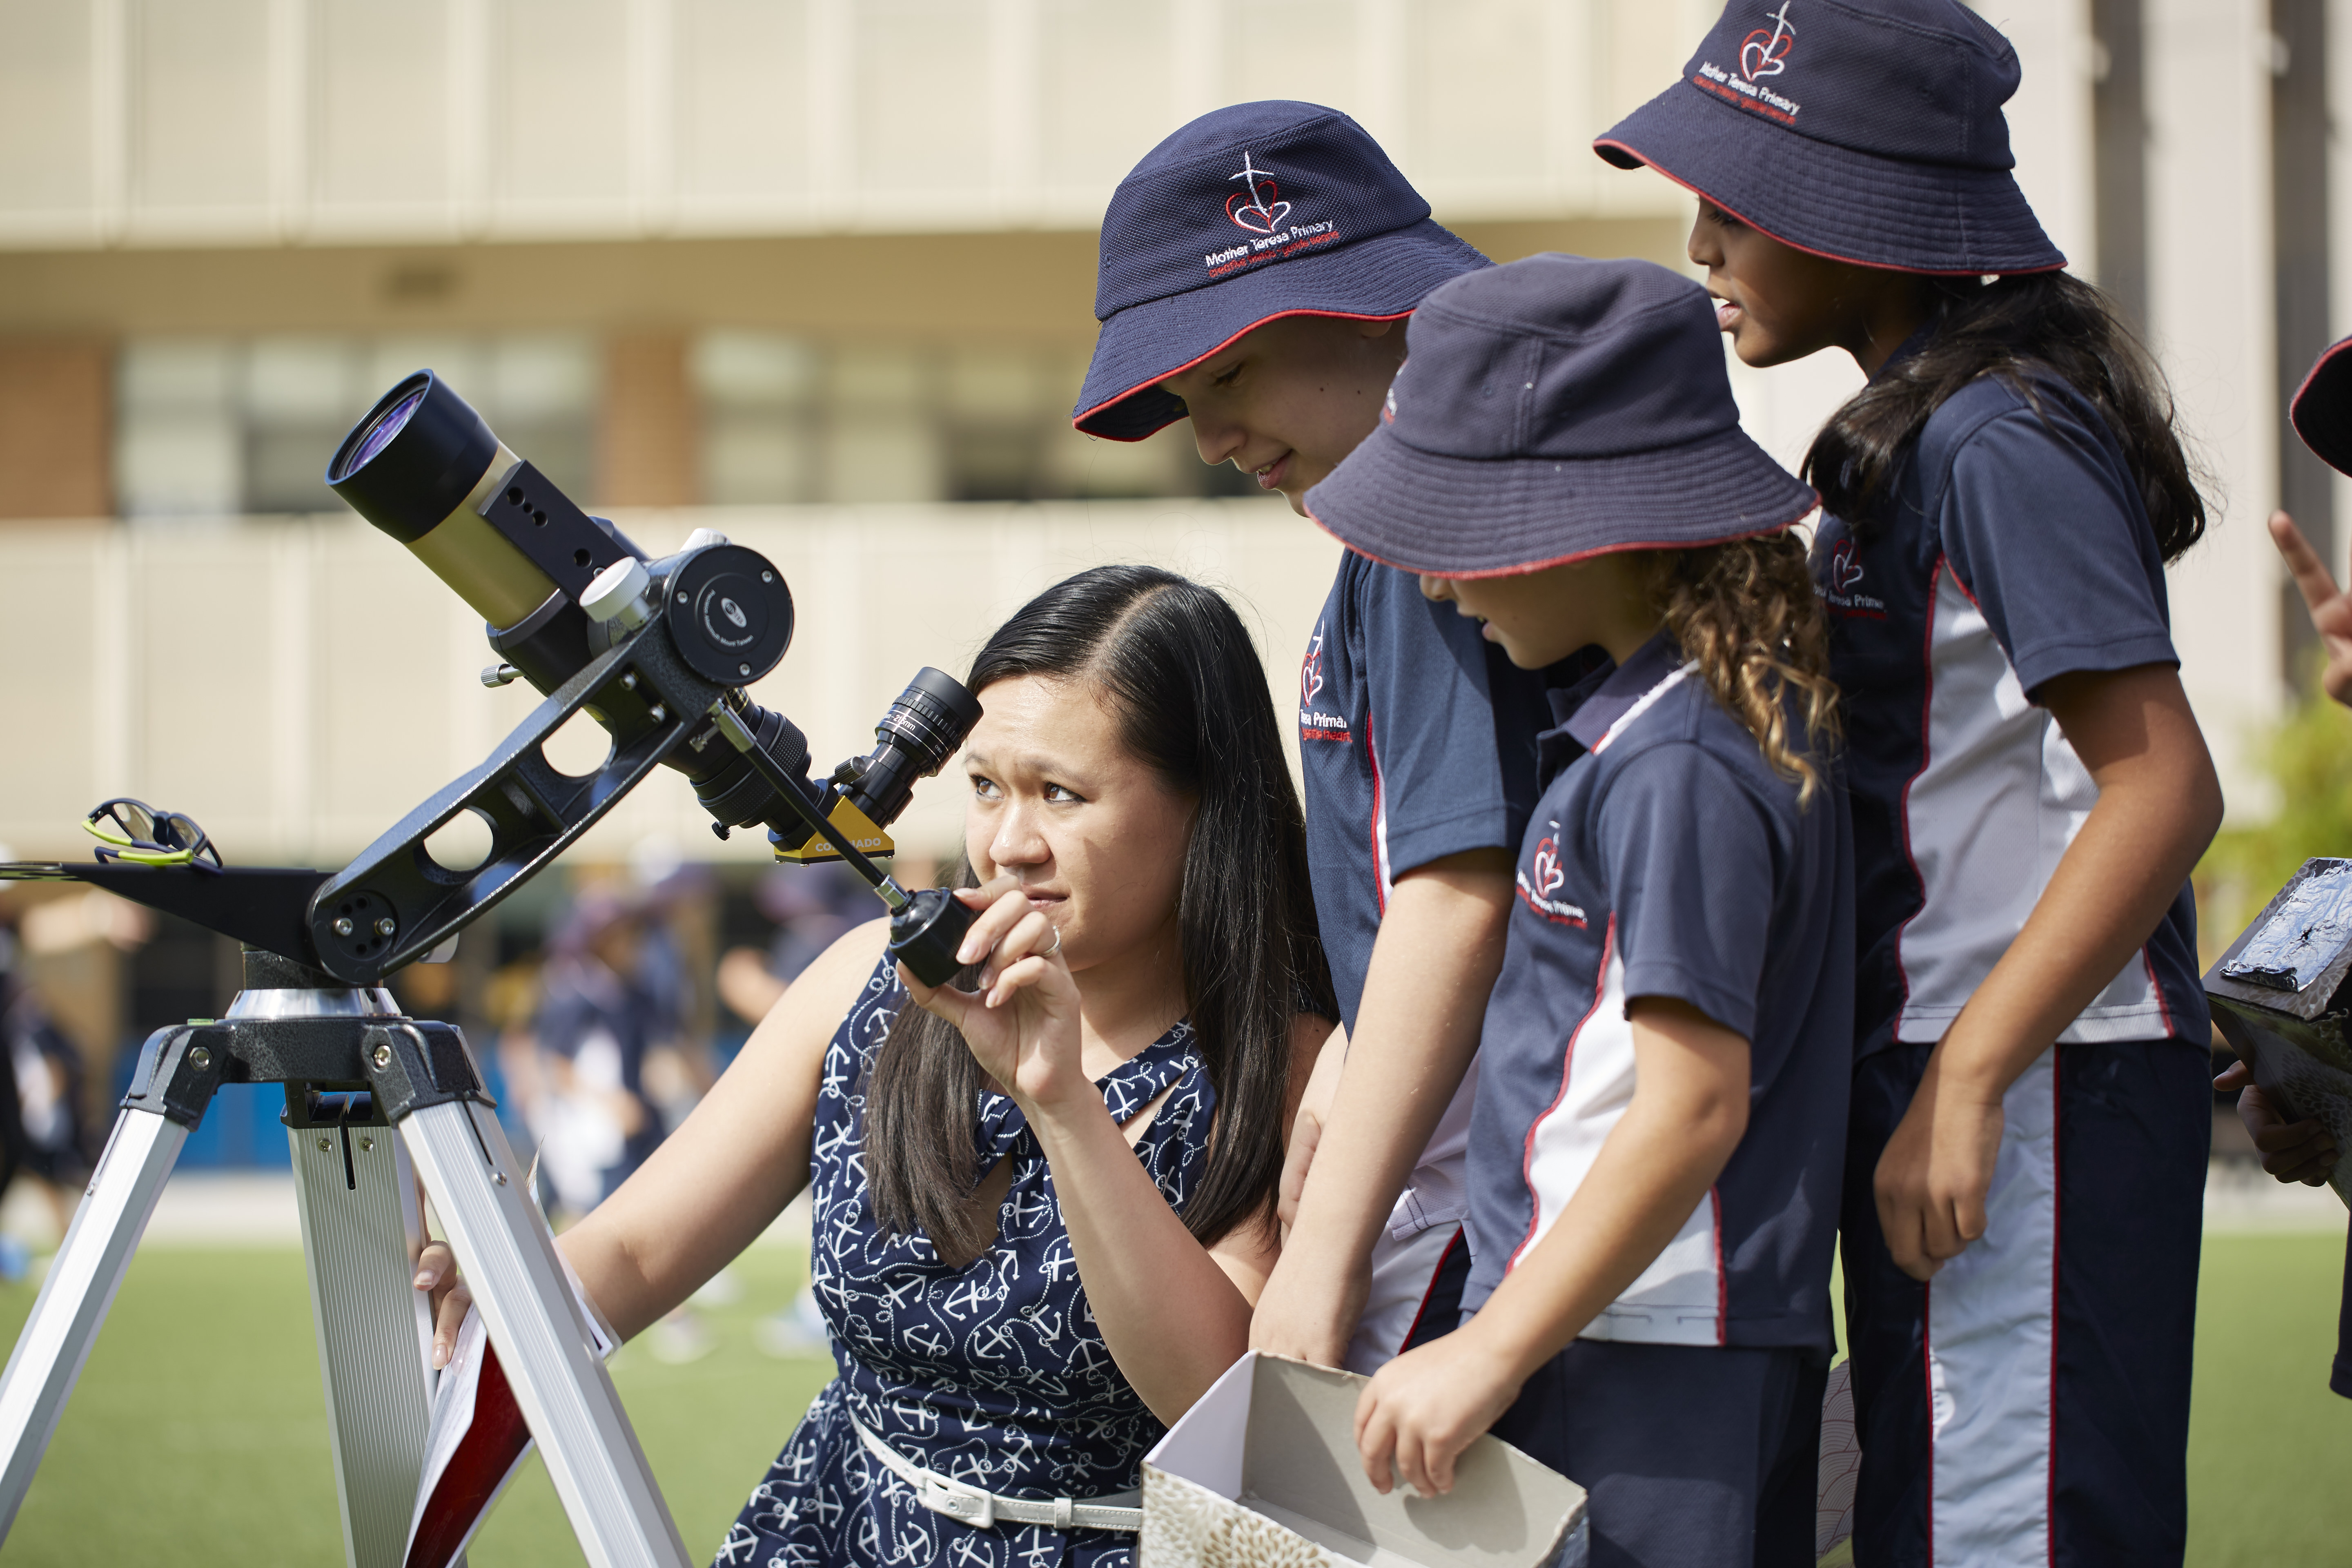 Scientist looking through a telescope with school children looking on.